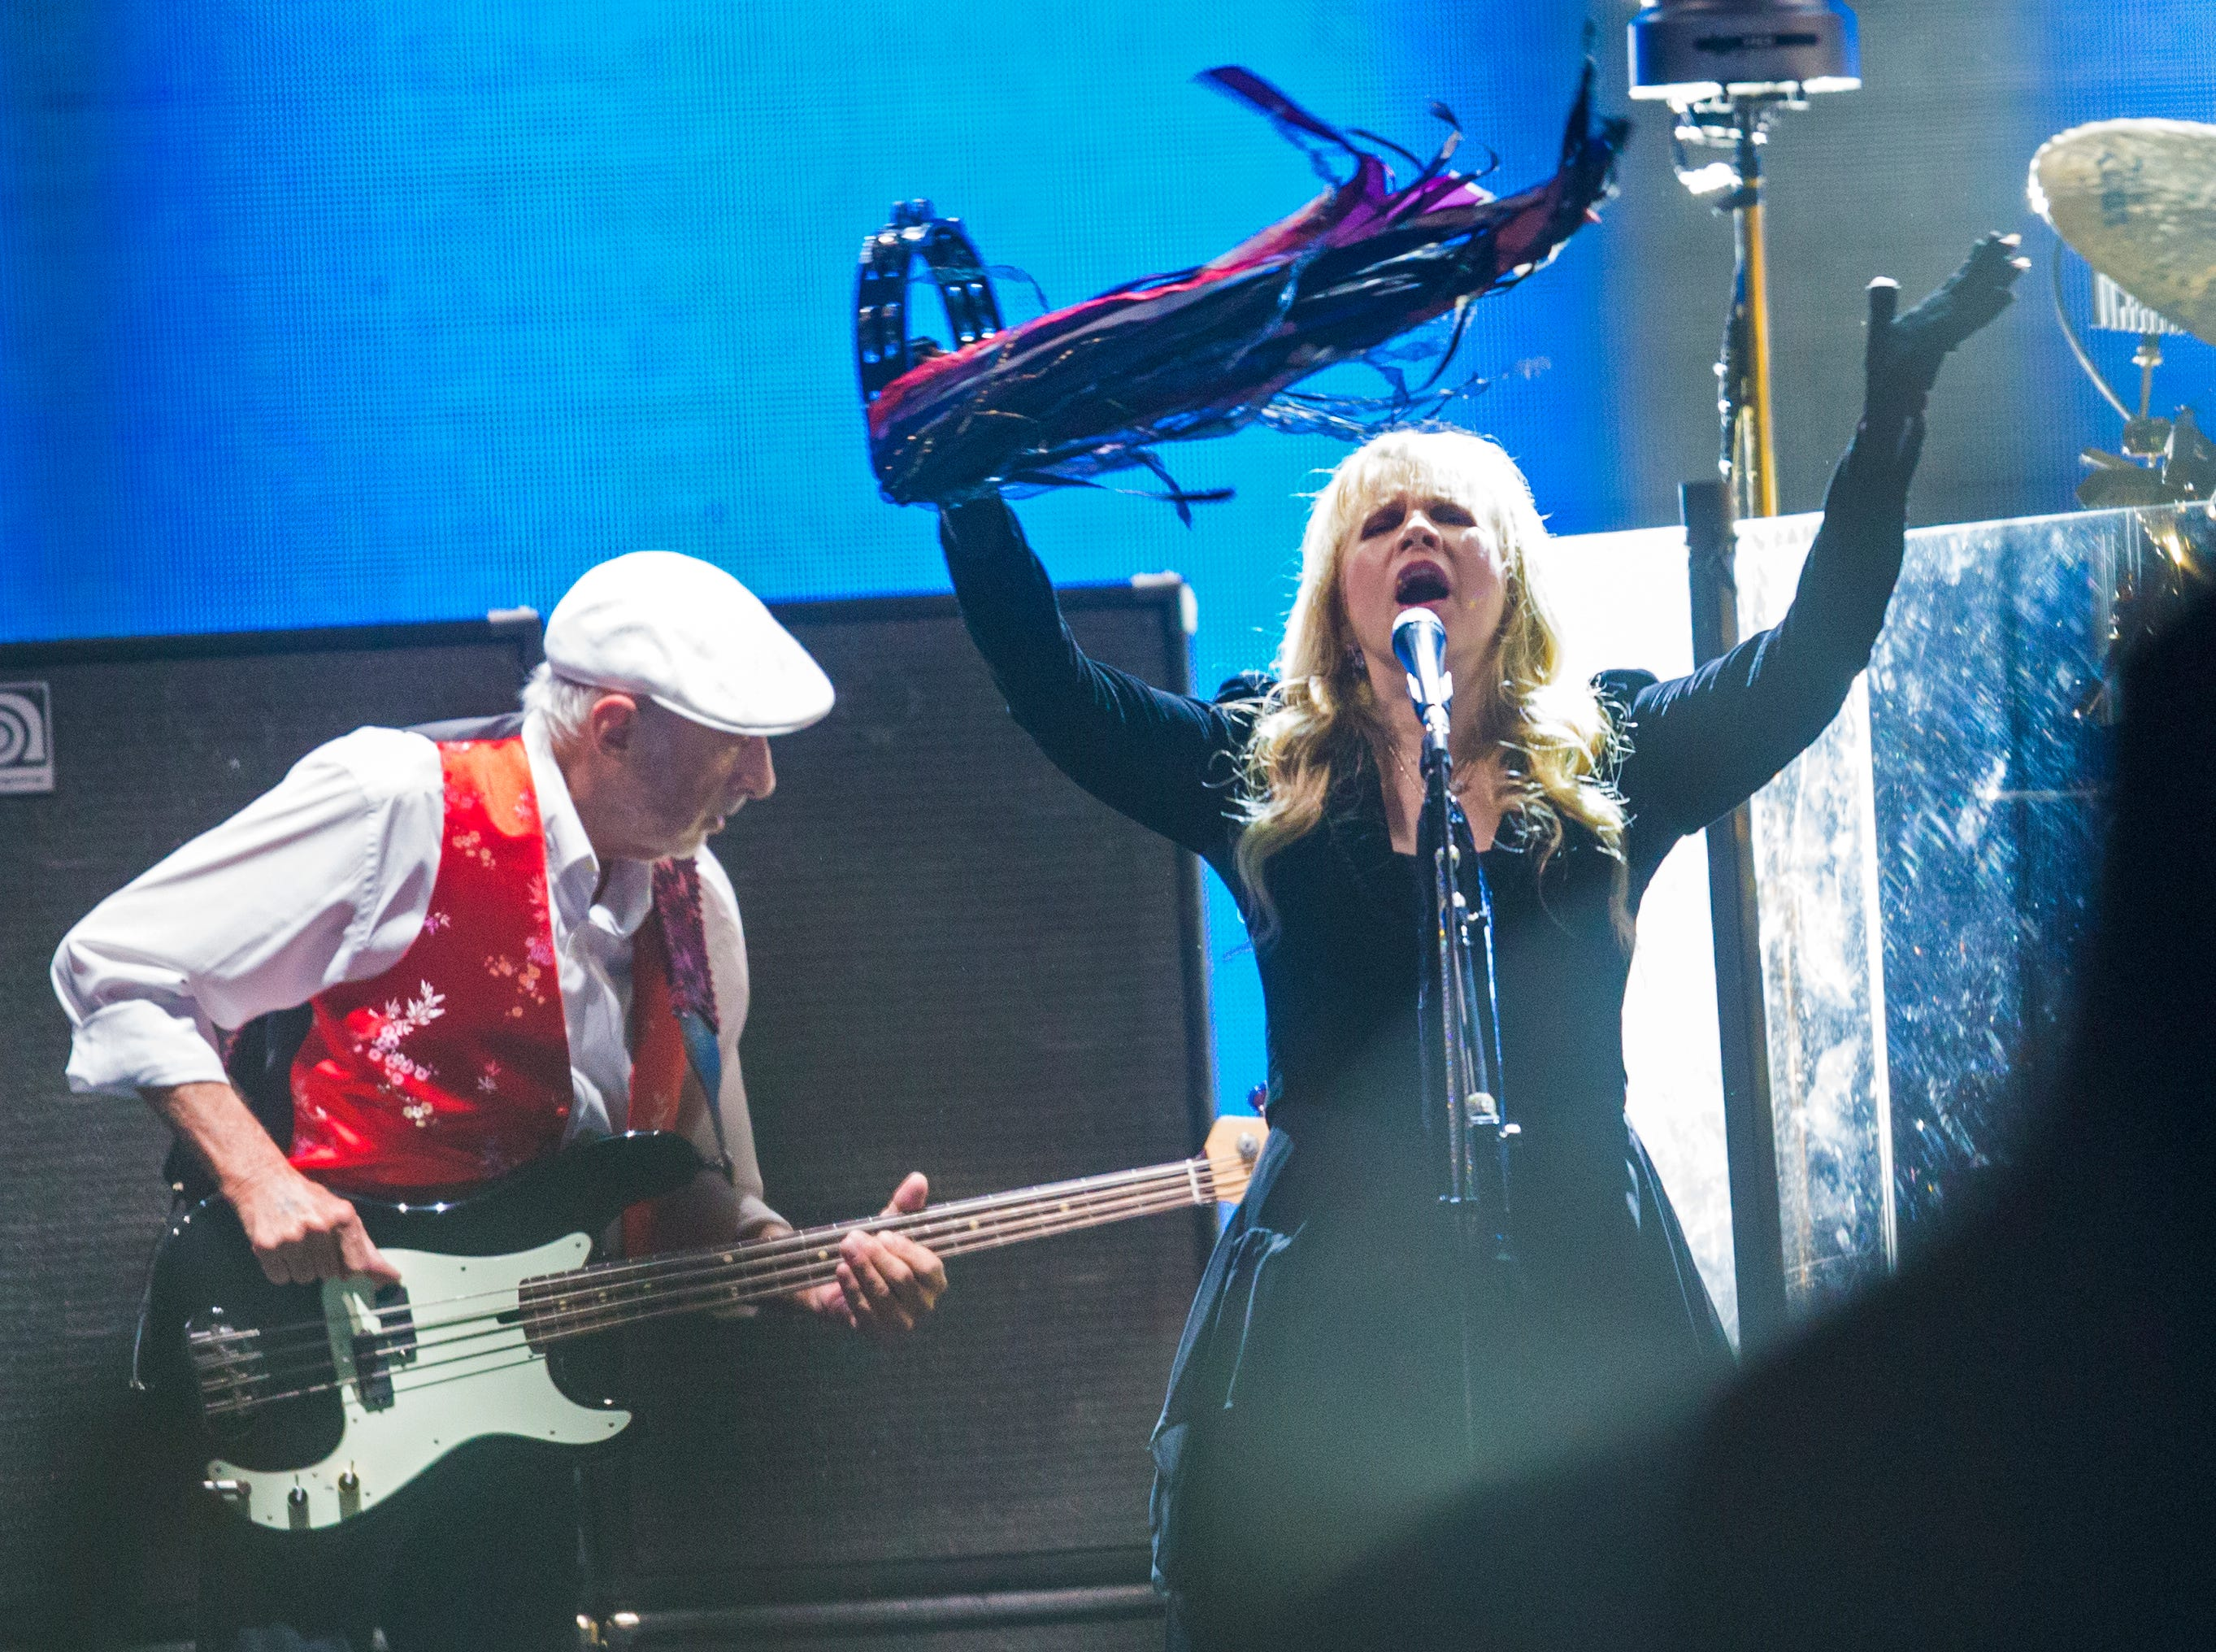 John McVie and Stevie Nicks perform with Fleetwood Mac during a concert at U.S. Airways Center in Phoenix, Ariz. Dec. 10, 2014.